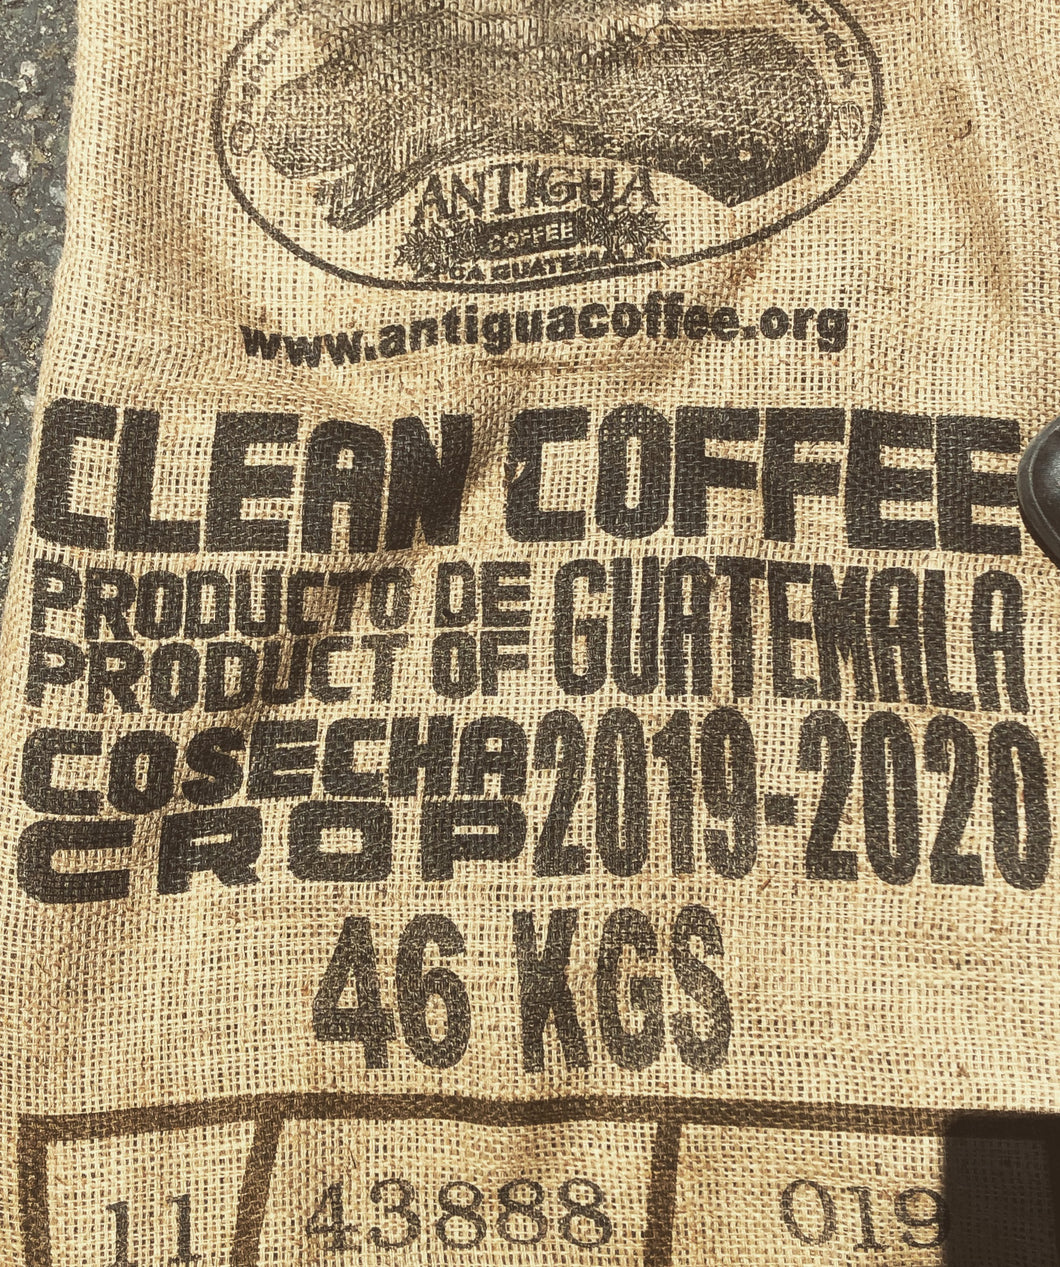 Clean Coffee Product of Guatemala Cosecha Crop 2019-2020